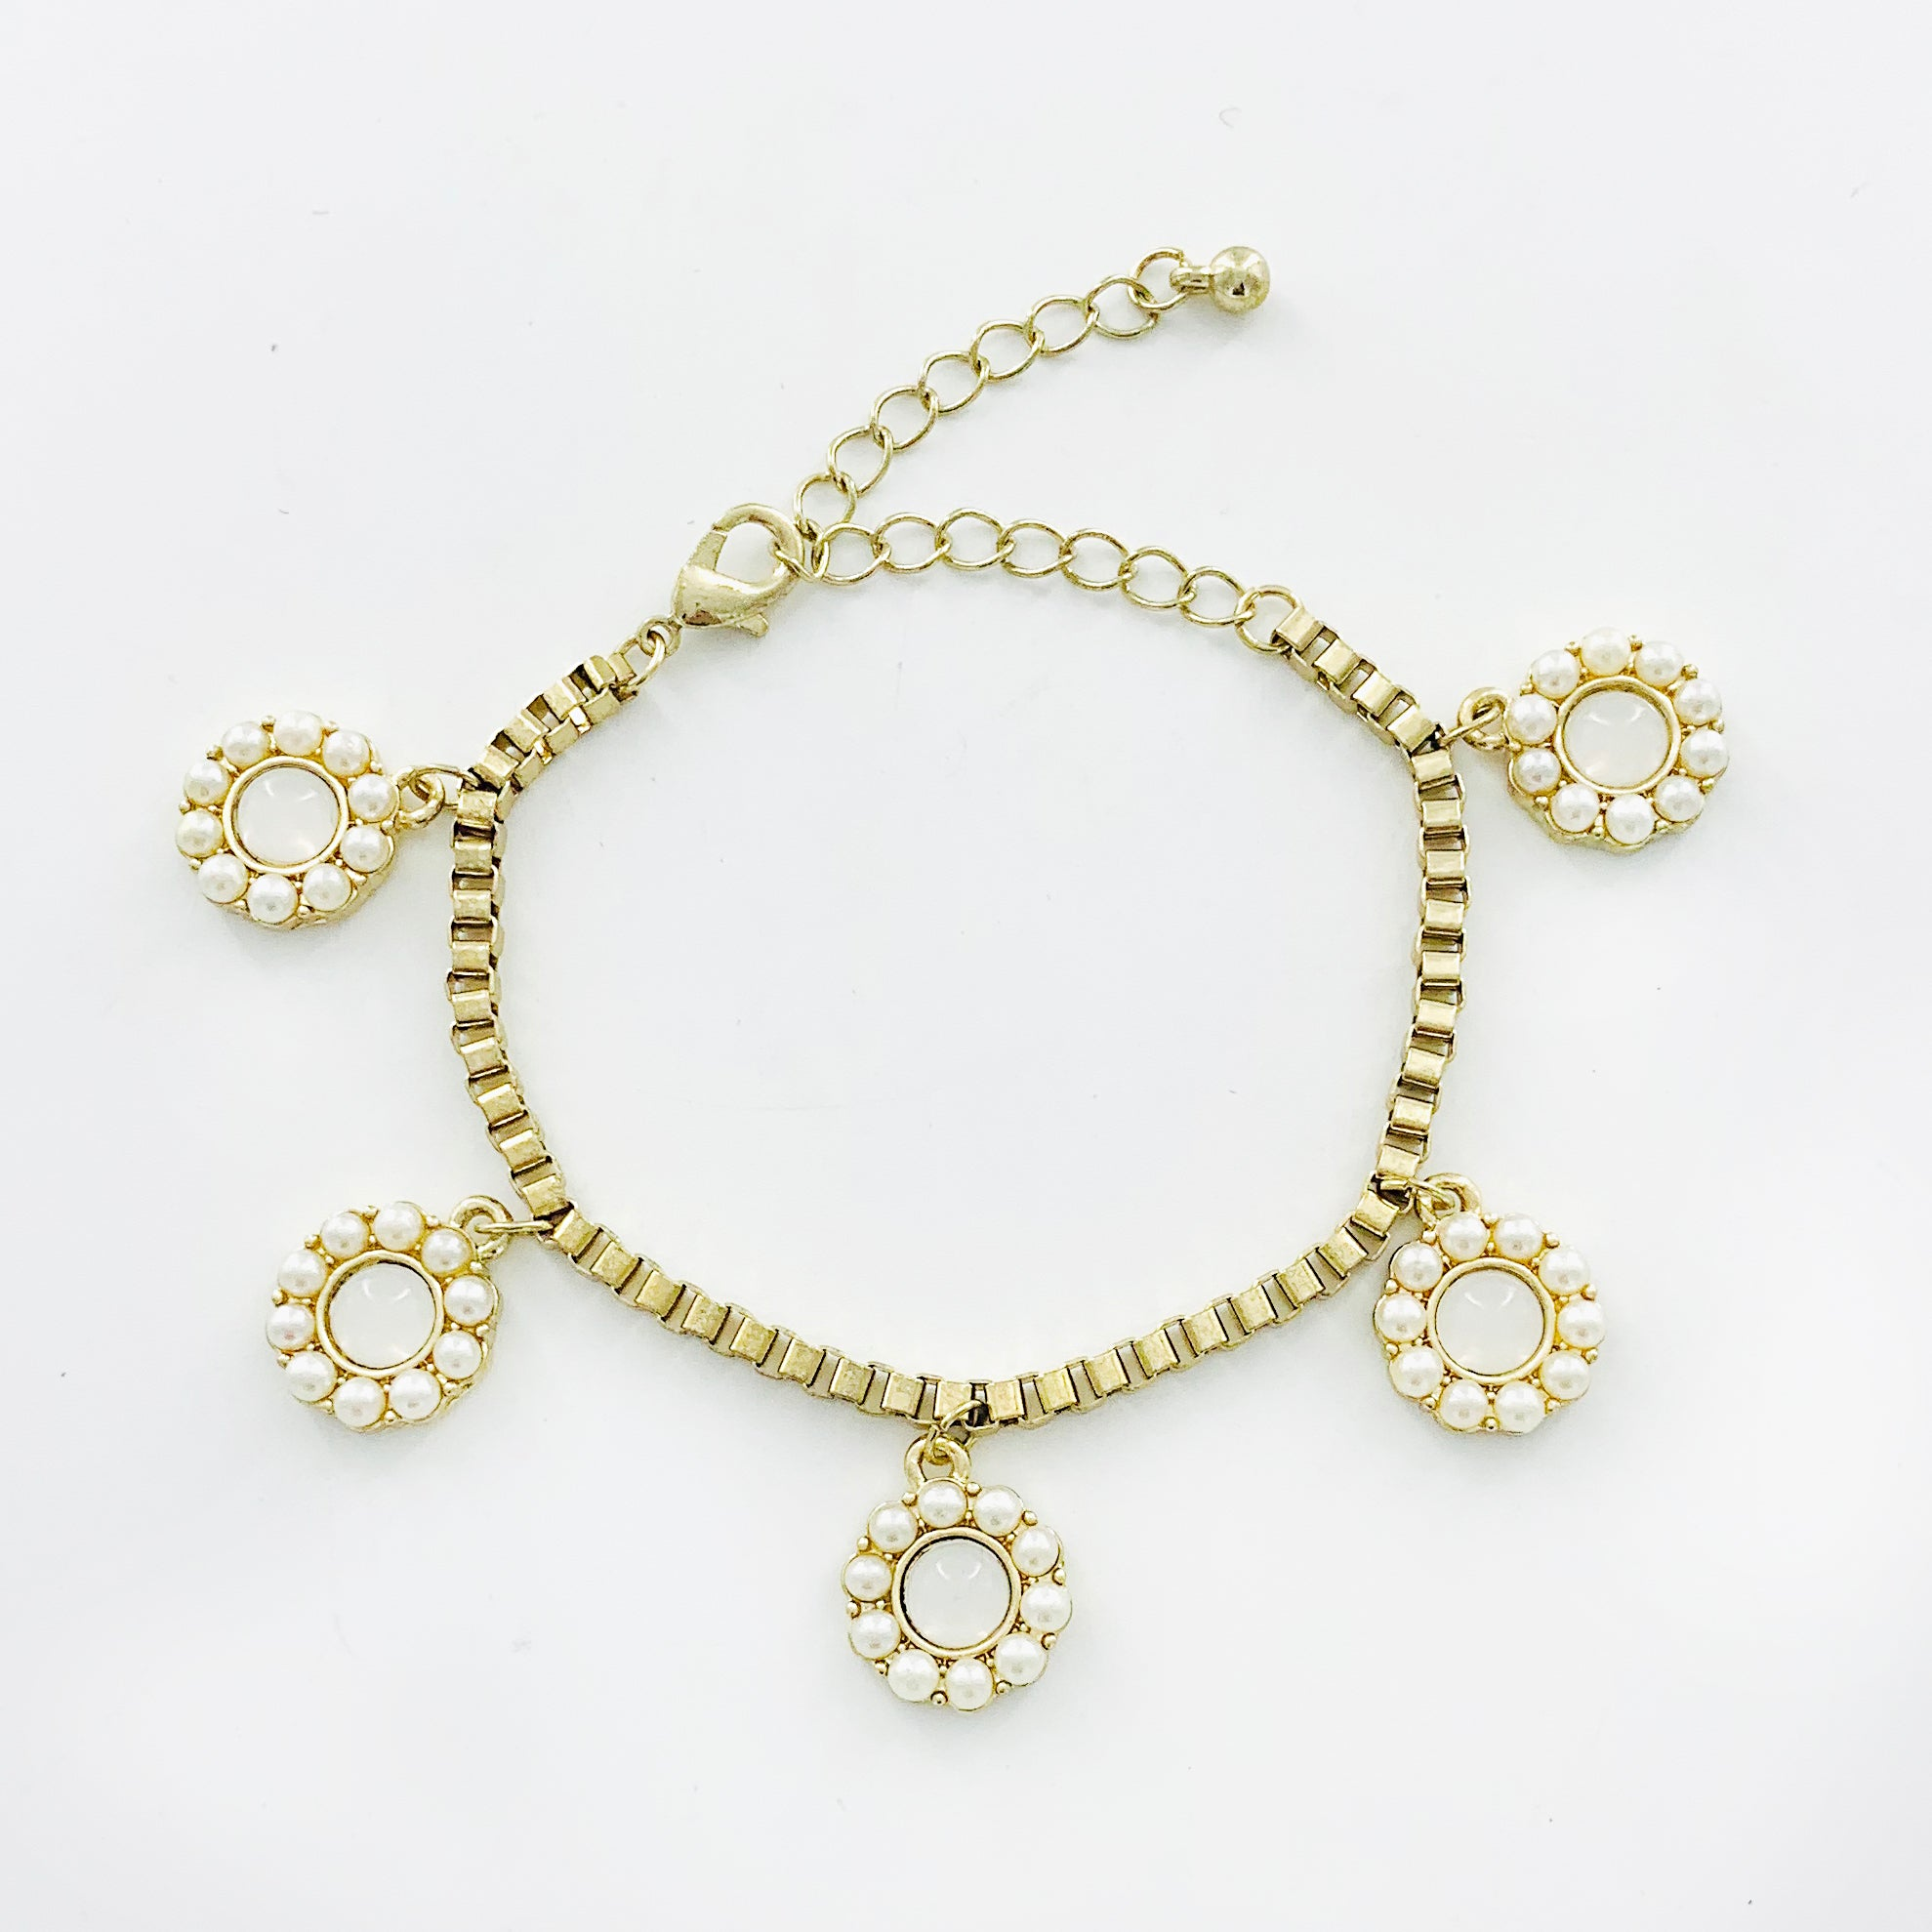 Gold chain with pearl flower dangling charms